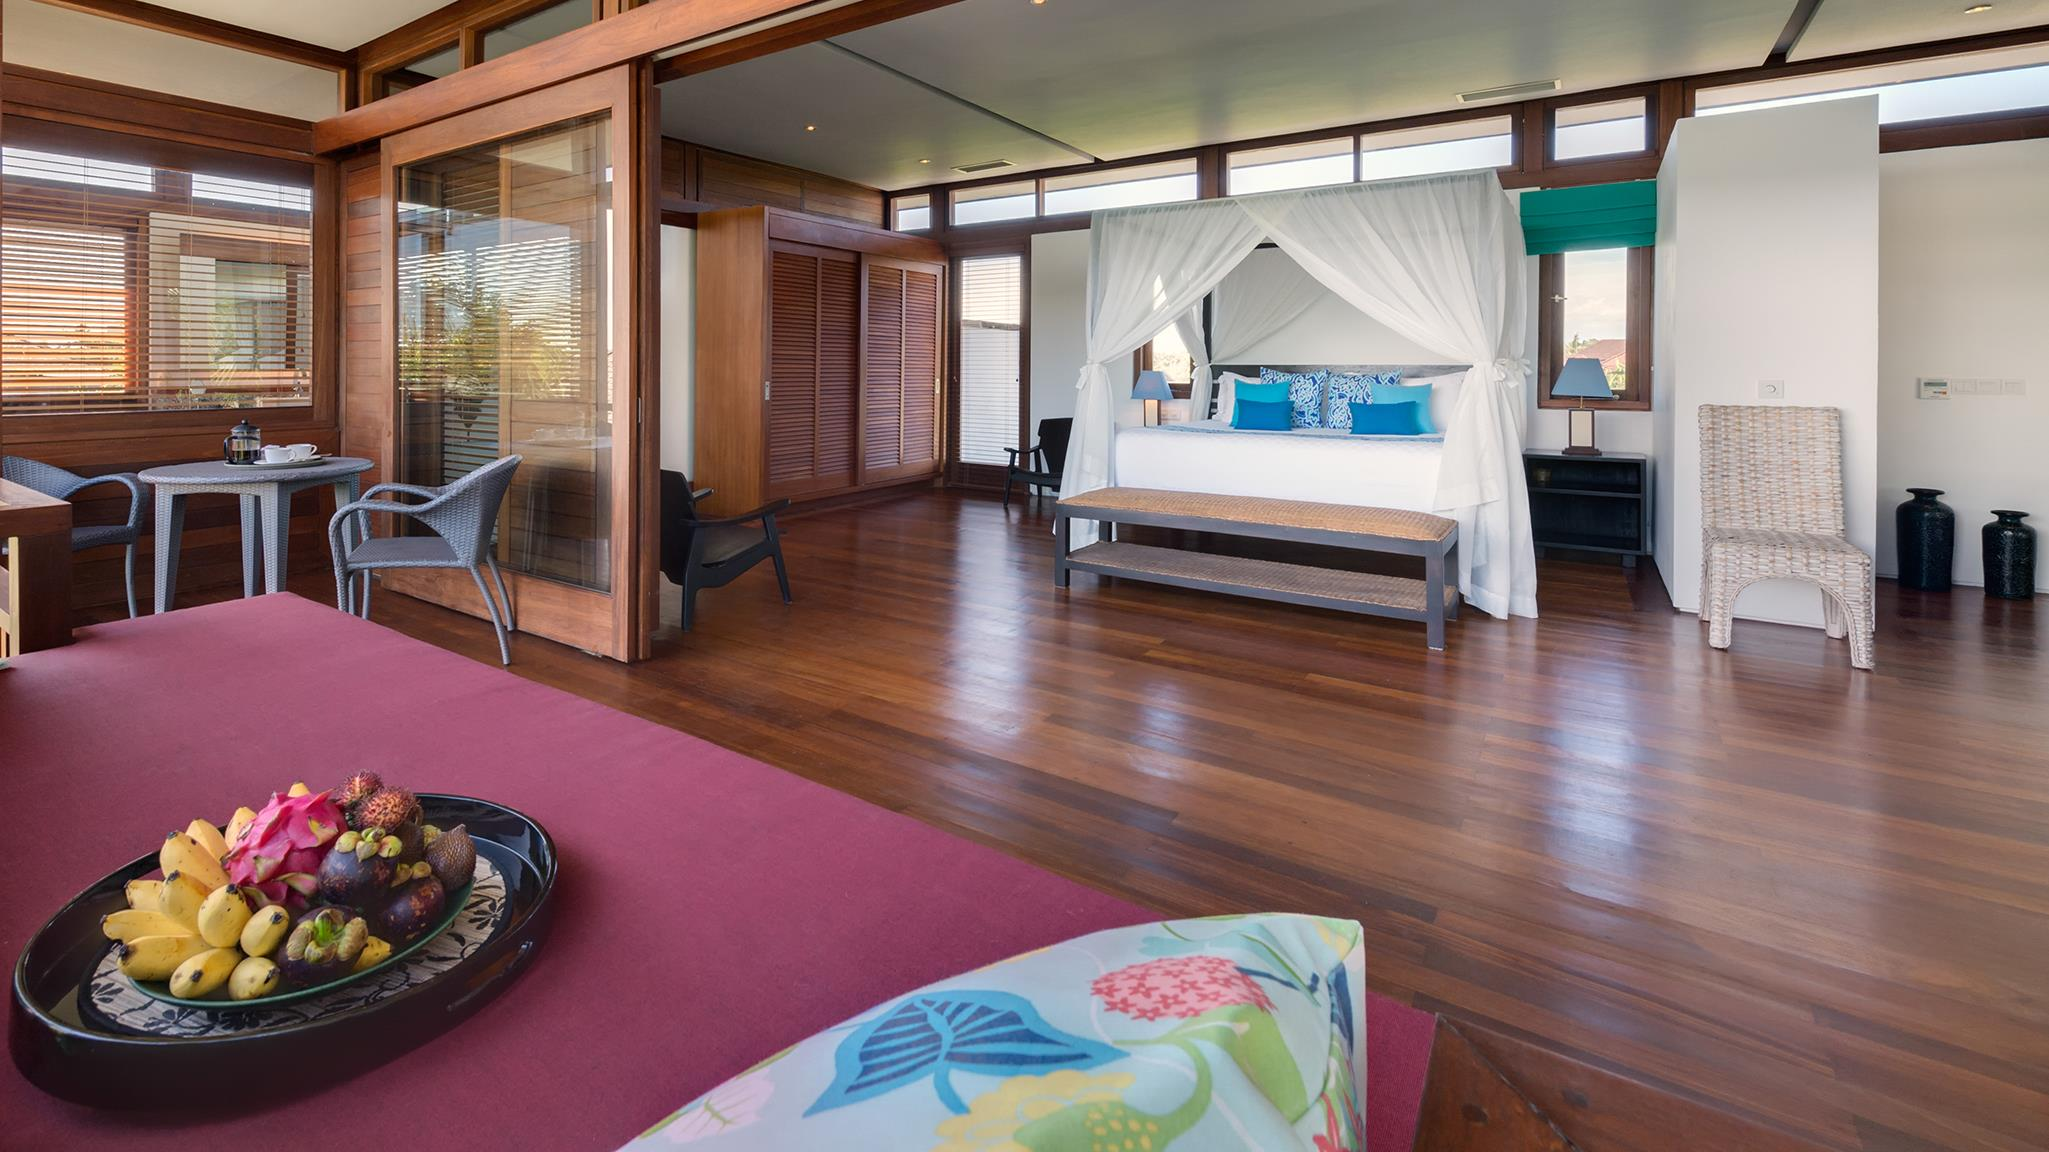 Spacious Bedroom with Wooden Floor and Fruits - Villa Bendega Rato - Canggu, Bali